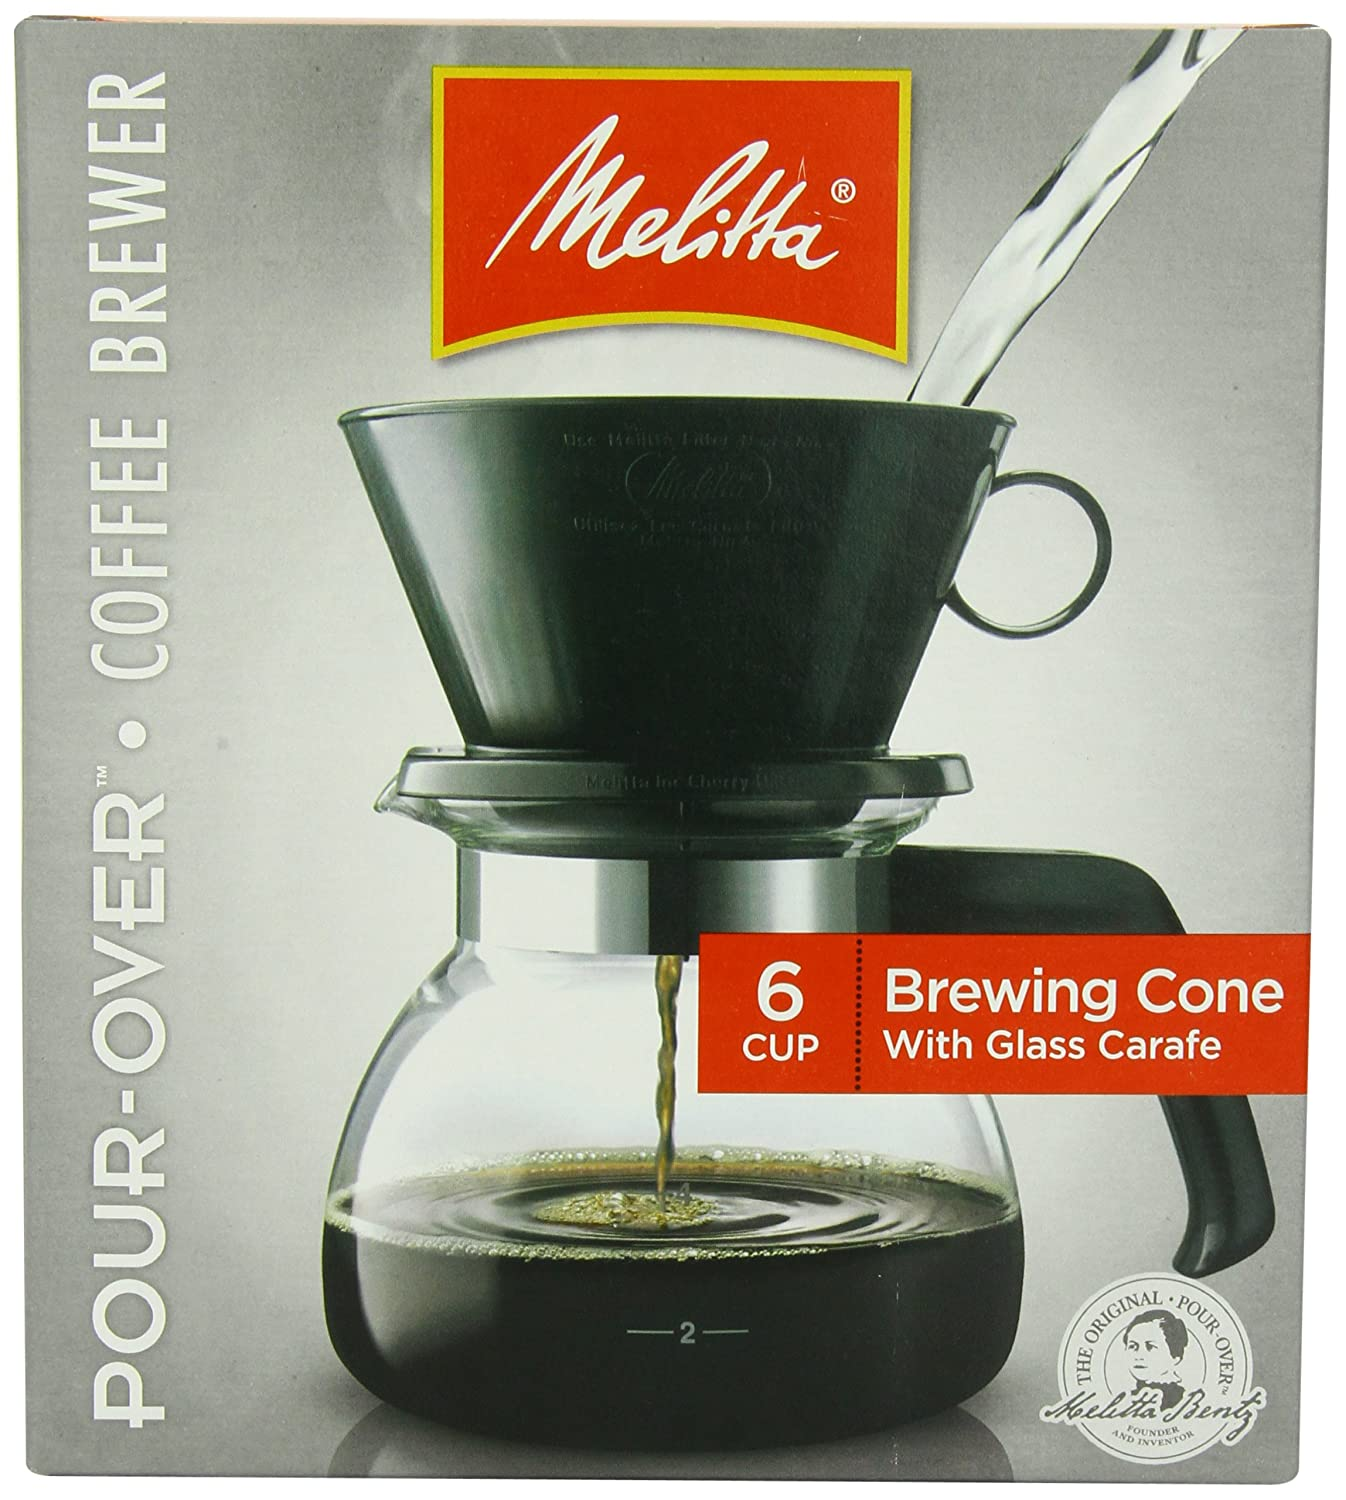 Melitta Coffee Maker, 6 Cup Pour-Over Brewer with Glass Carafe, 1-Count , New, F 55437640442 | eBay